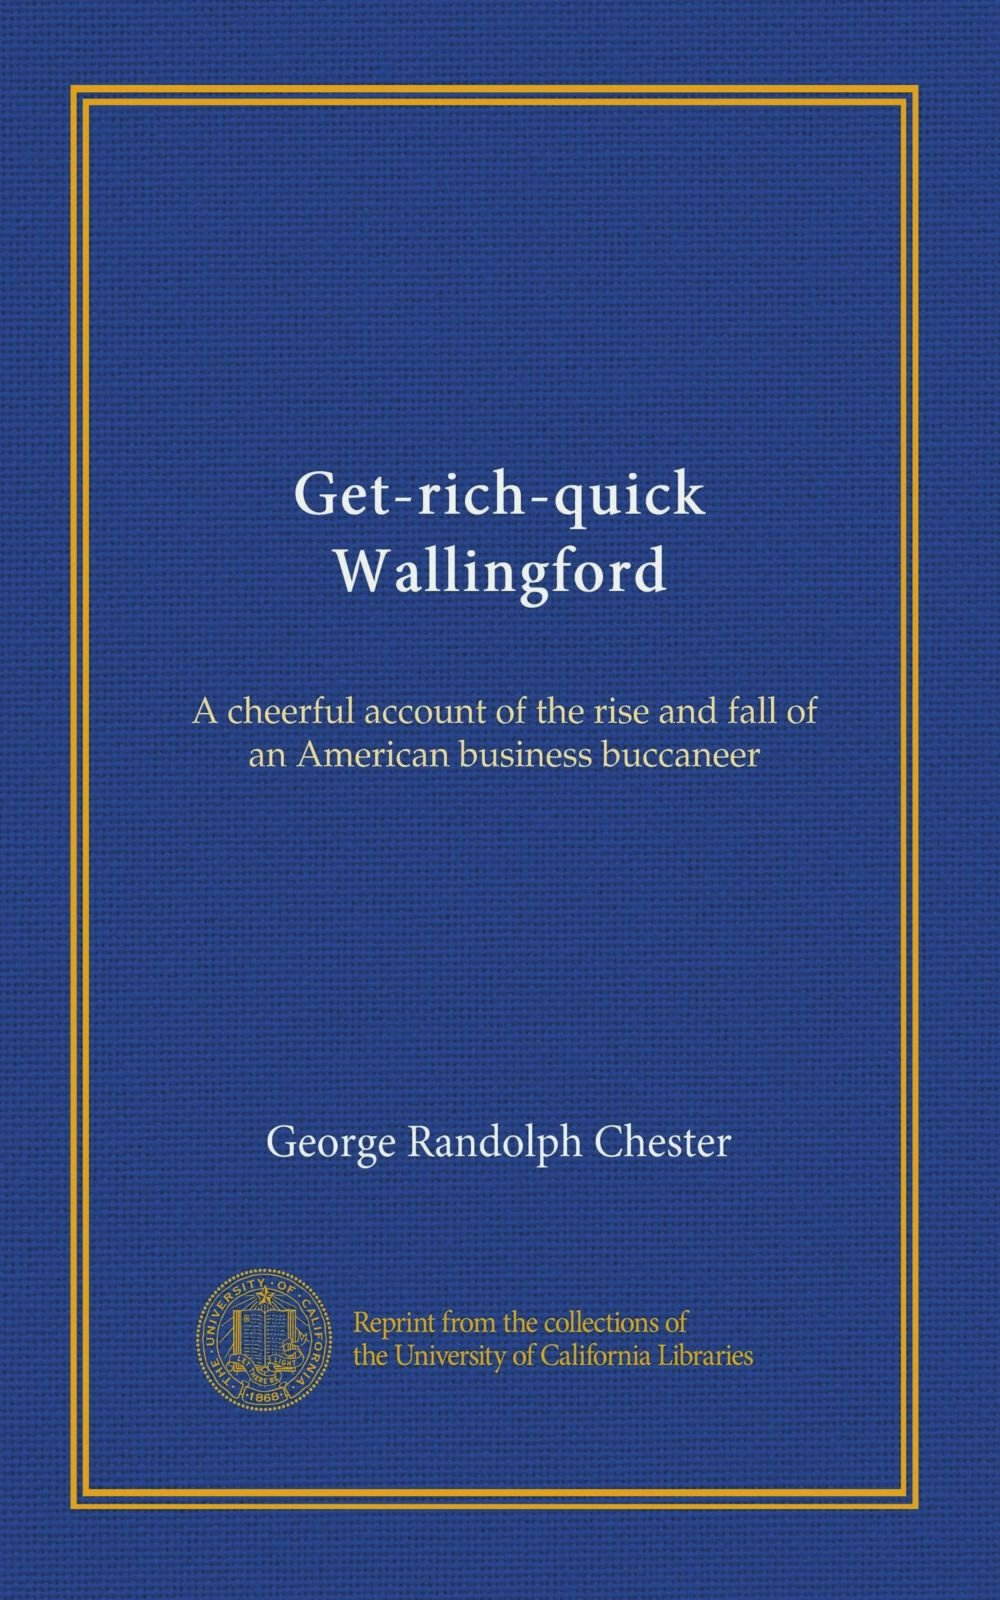 Get-rich-quick Wallingford: A cheerful account of the rise and fall of an American business buccaneer pdf